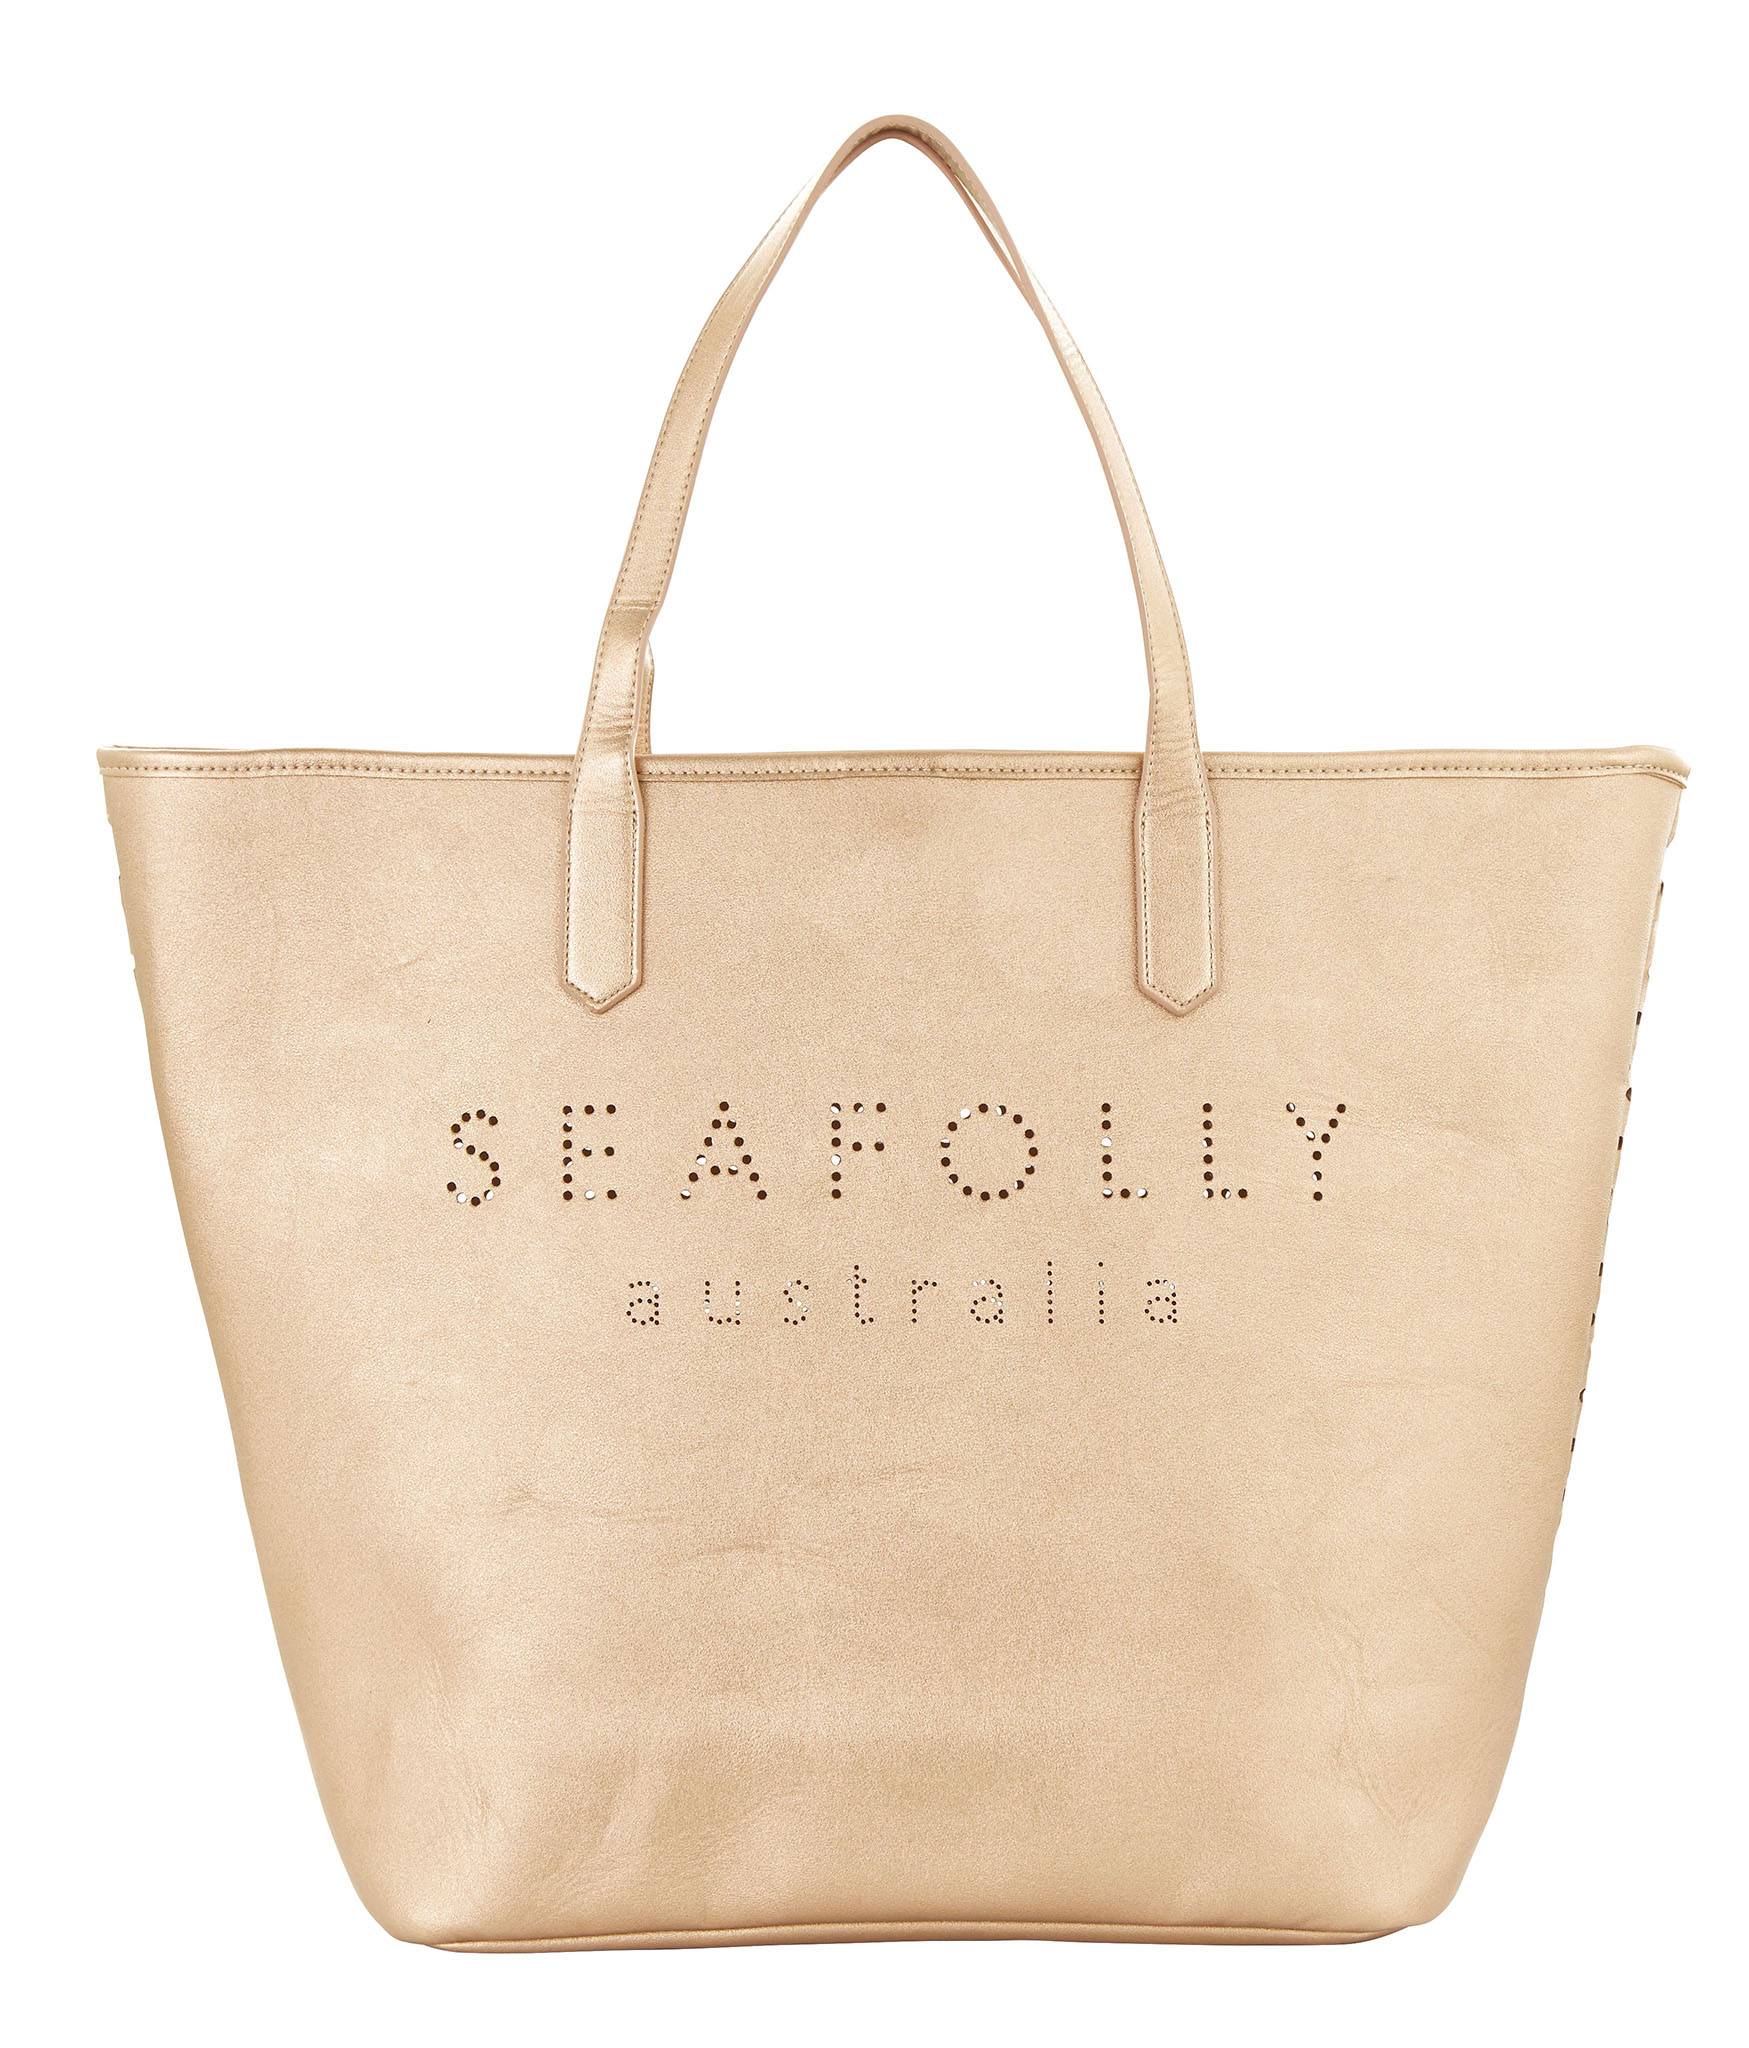 Seafolly Carried Away Vegan Leather Tote - Rose Gold